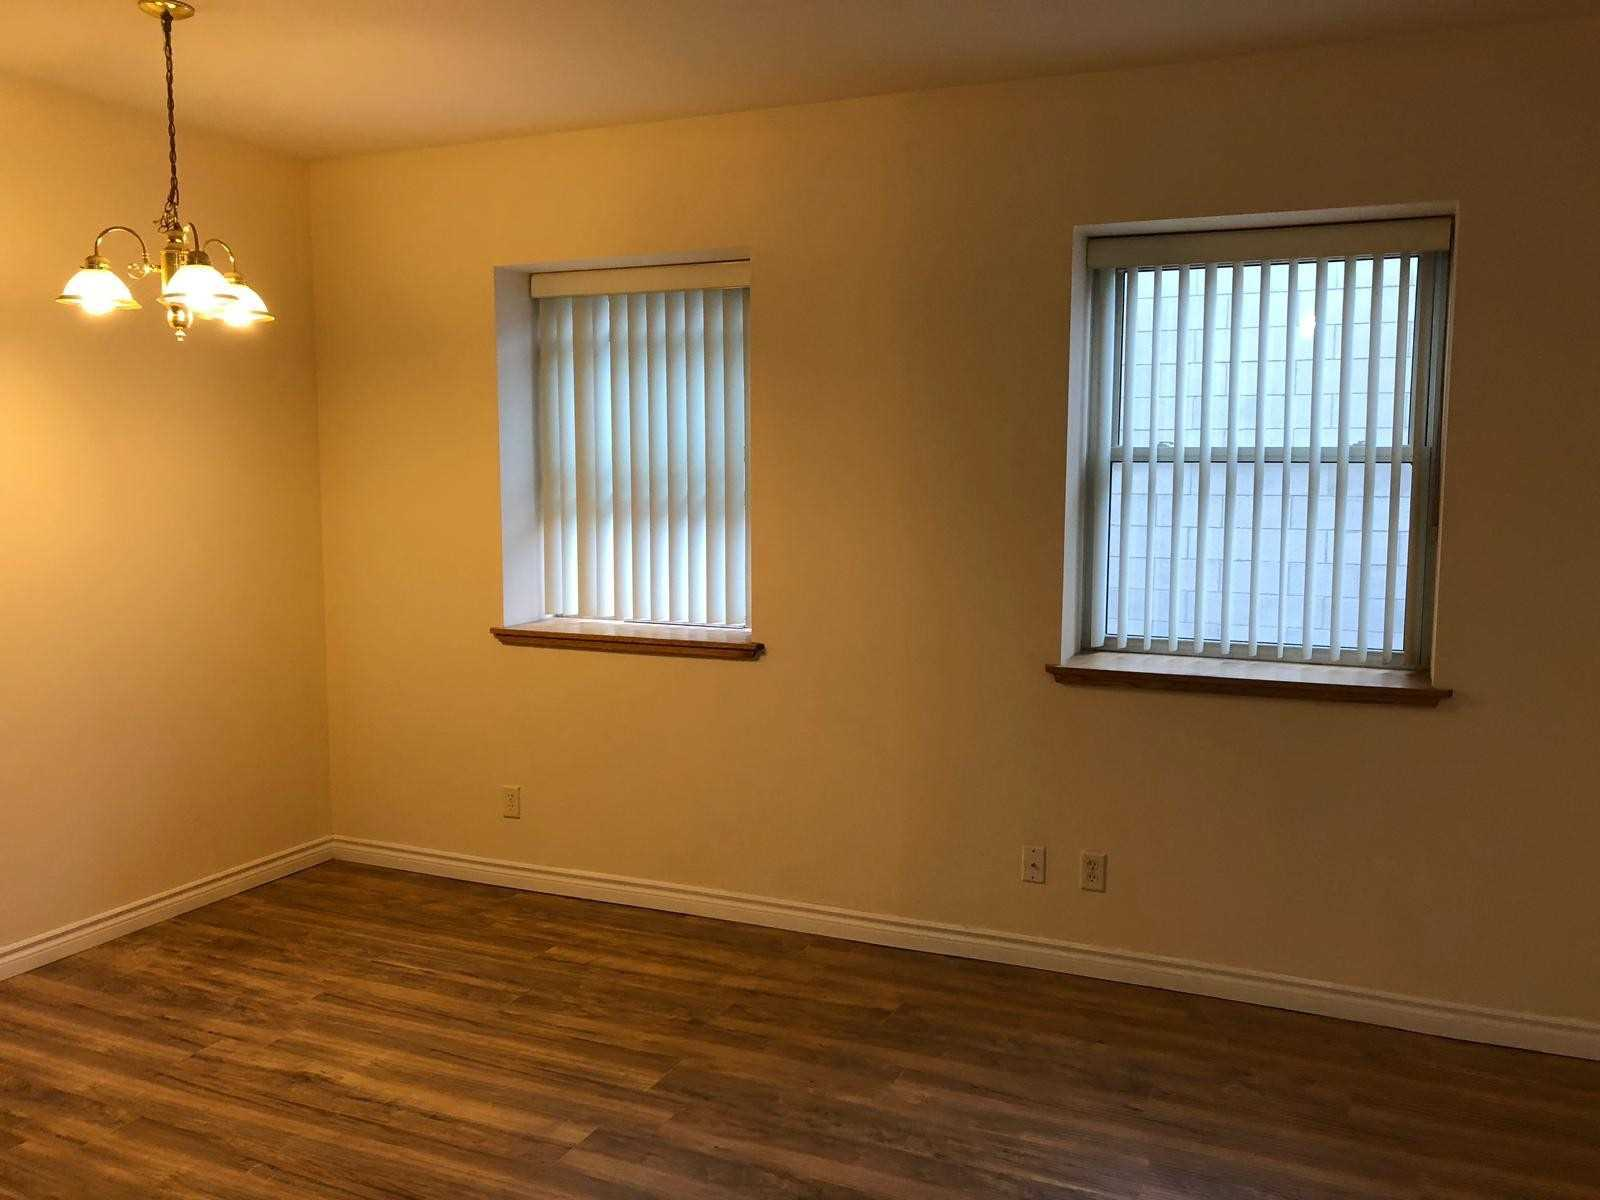 This Is It The Search Is Over, The Best Value In The City. Amazing Downtown Location In The Heart Of Downtown Beautiful Guelph, Spacious 2 Bed, Well Maintained. Everything Around You Mall Trails Restaurants Church Farmers Market Go Transit And Much More....